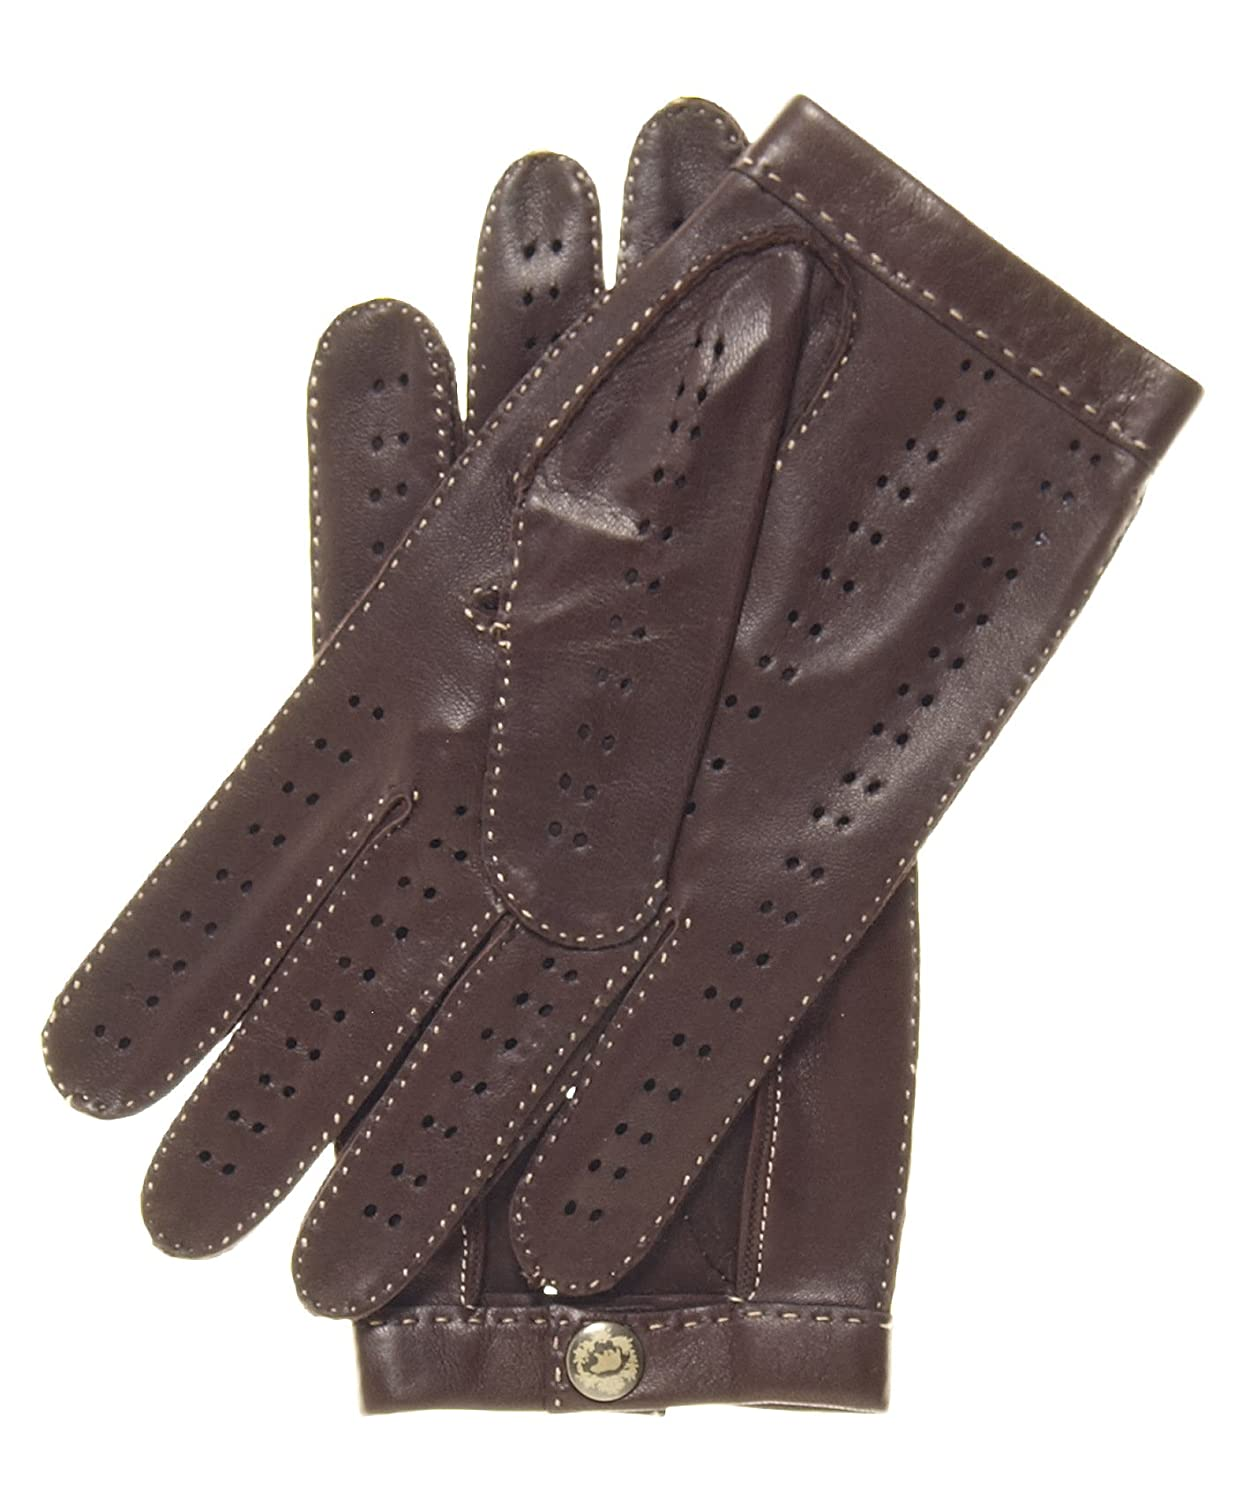 Handmade leather driving gloves - Fratelli Orsini Men S Handsewn Italian Lambskin Leather Driving Gloves Size 7 Color Black At Amazon Men S Clothing Store Cold Weather Gloves